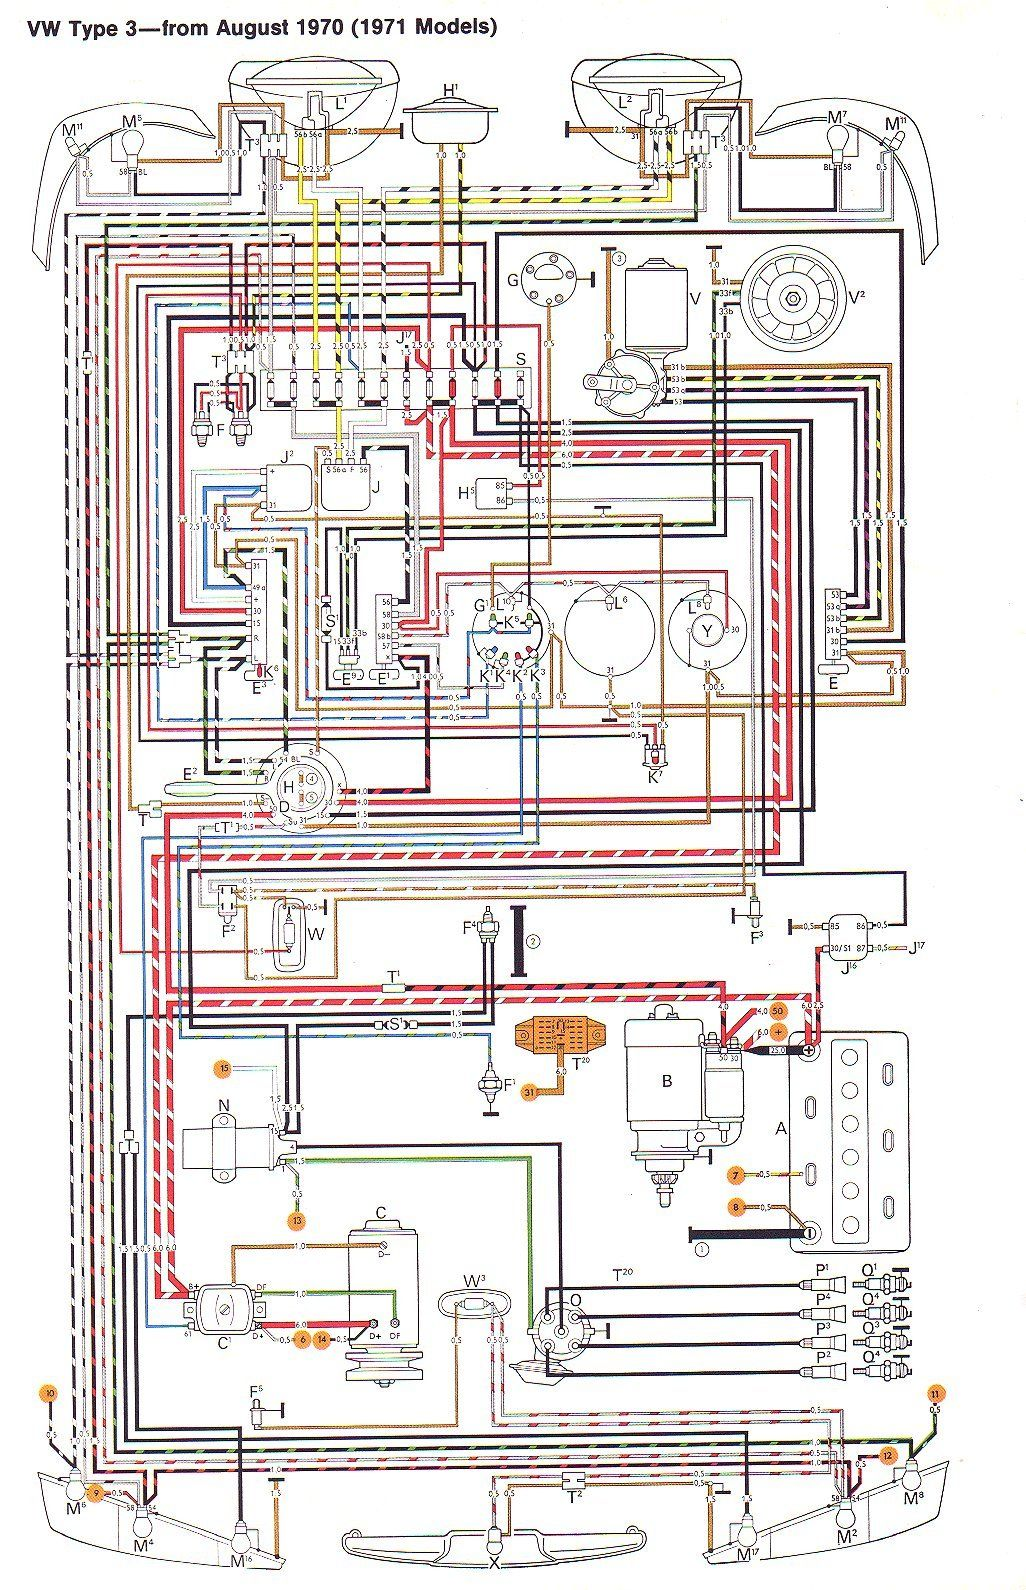 e0db58370f79a63d02d45f00cf63f44a 71 vw t3 wiring diagram ruthie pinterest volkswagen, engine vw engine wiring diagram at arjmand.co